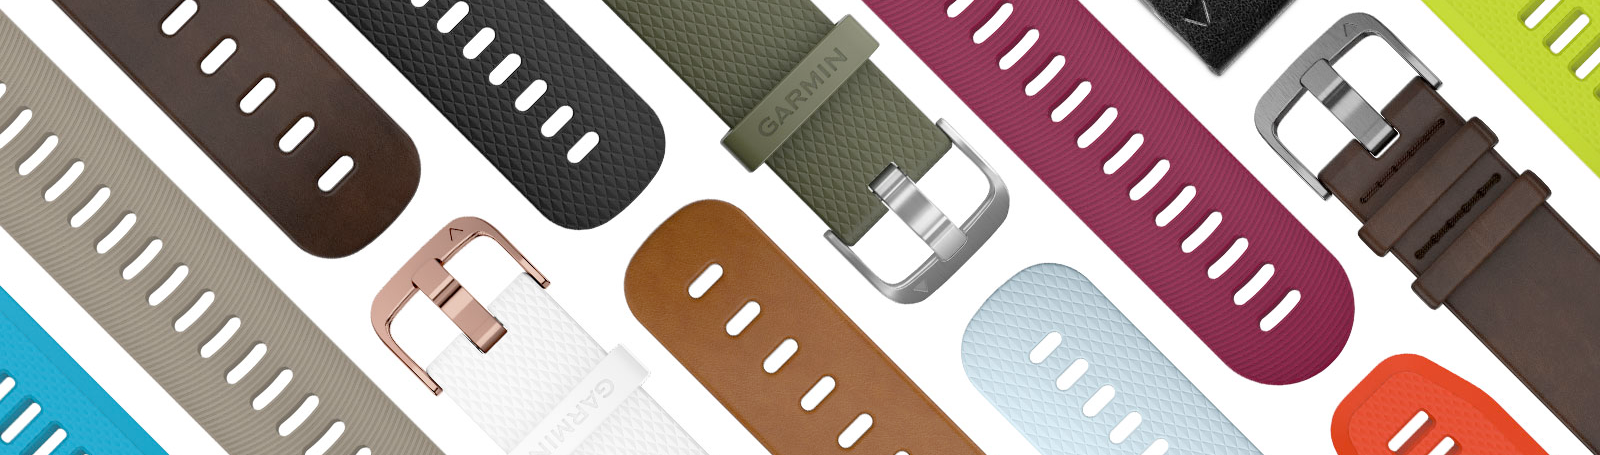 Wearables & Smartwatches Accessories